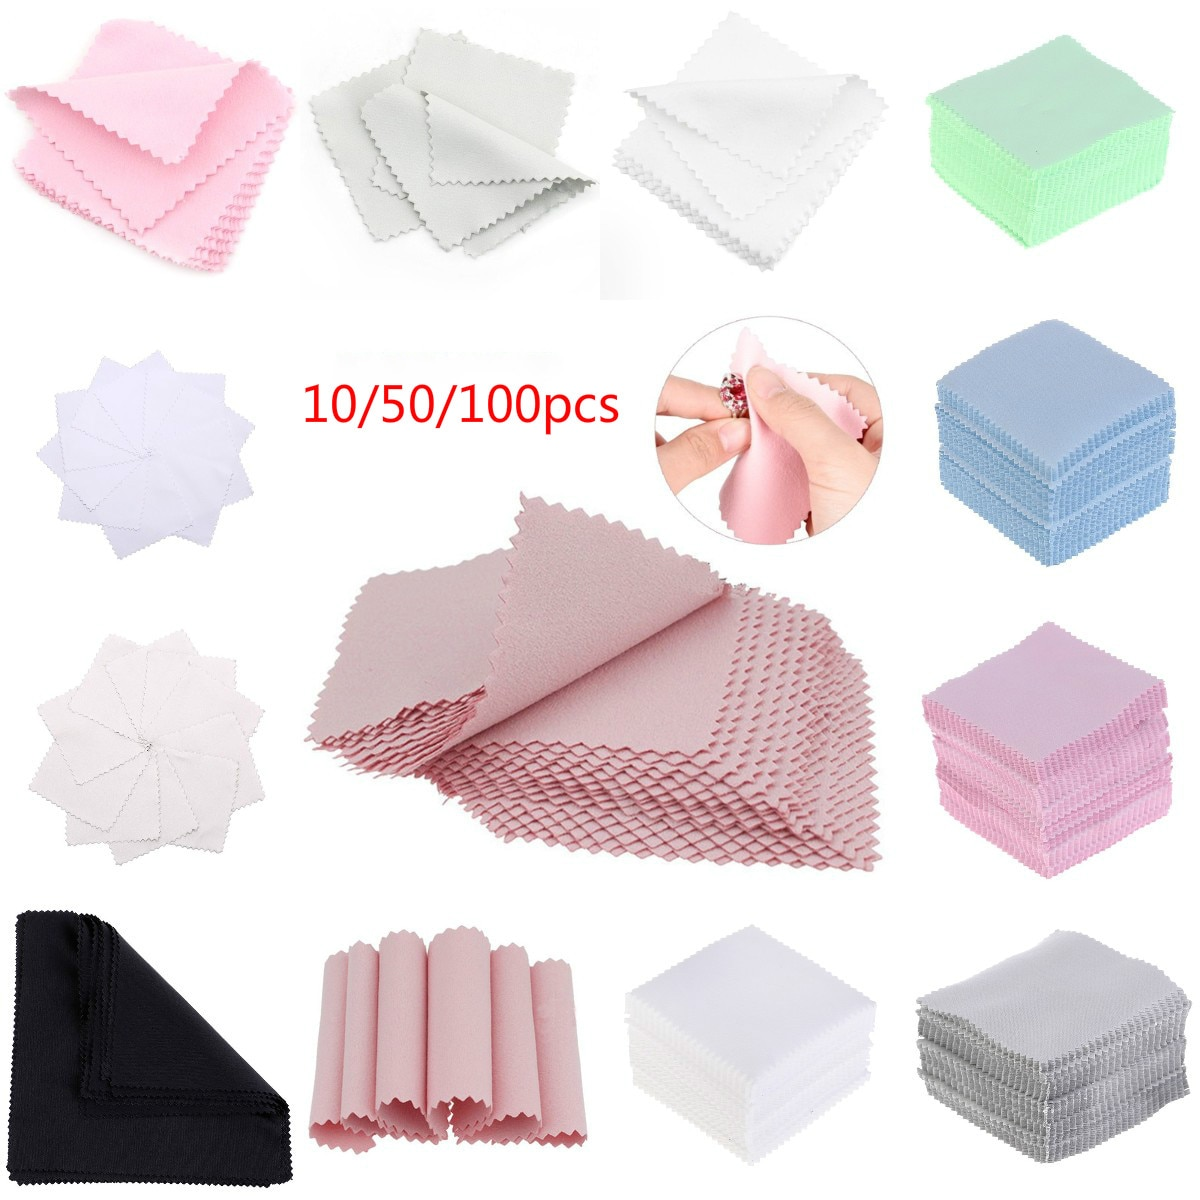 10/50/100pc Cleaner Clean Glasses Lens Cloth Wipes For Sunglasses Microfiber Eyeglass Cleaning Cloth